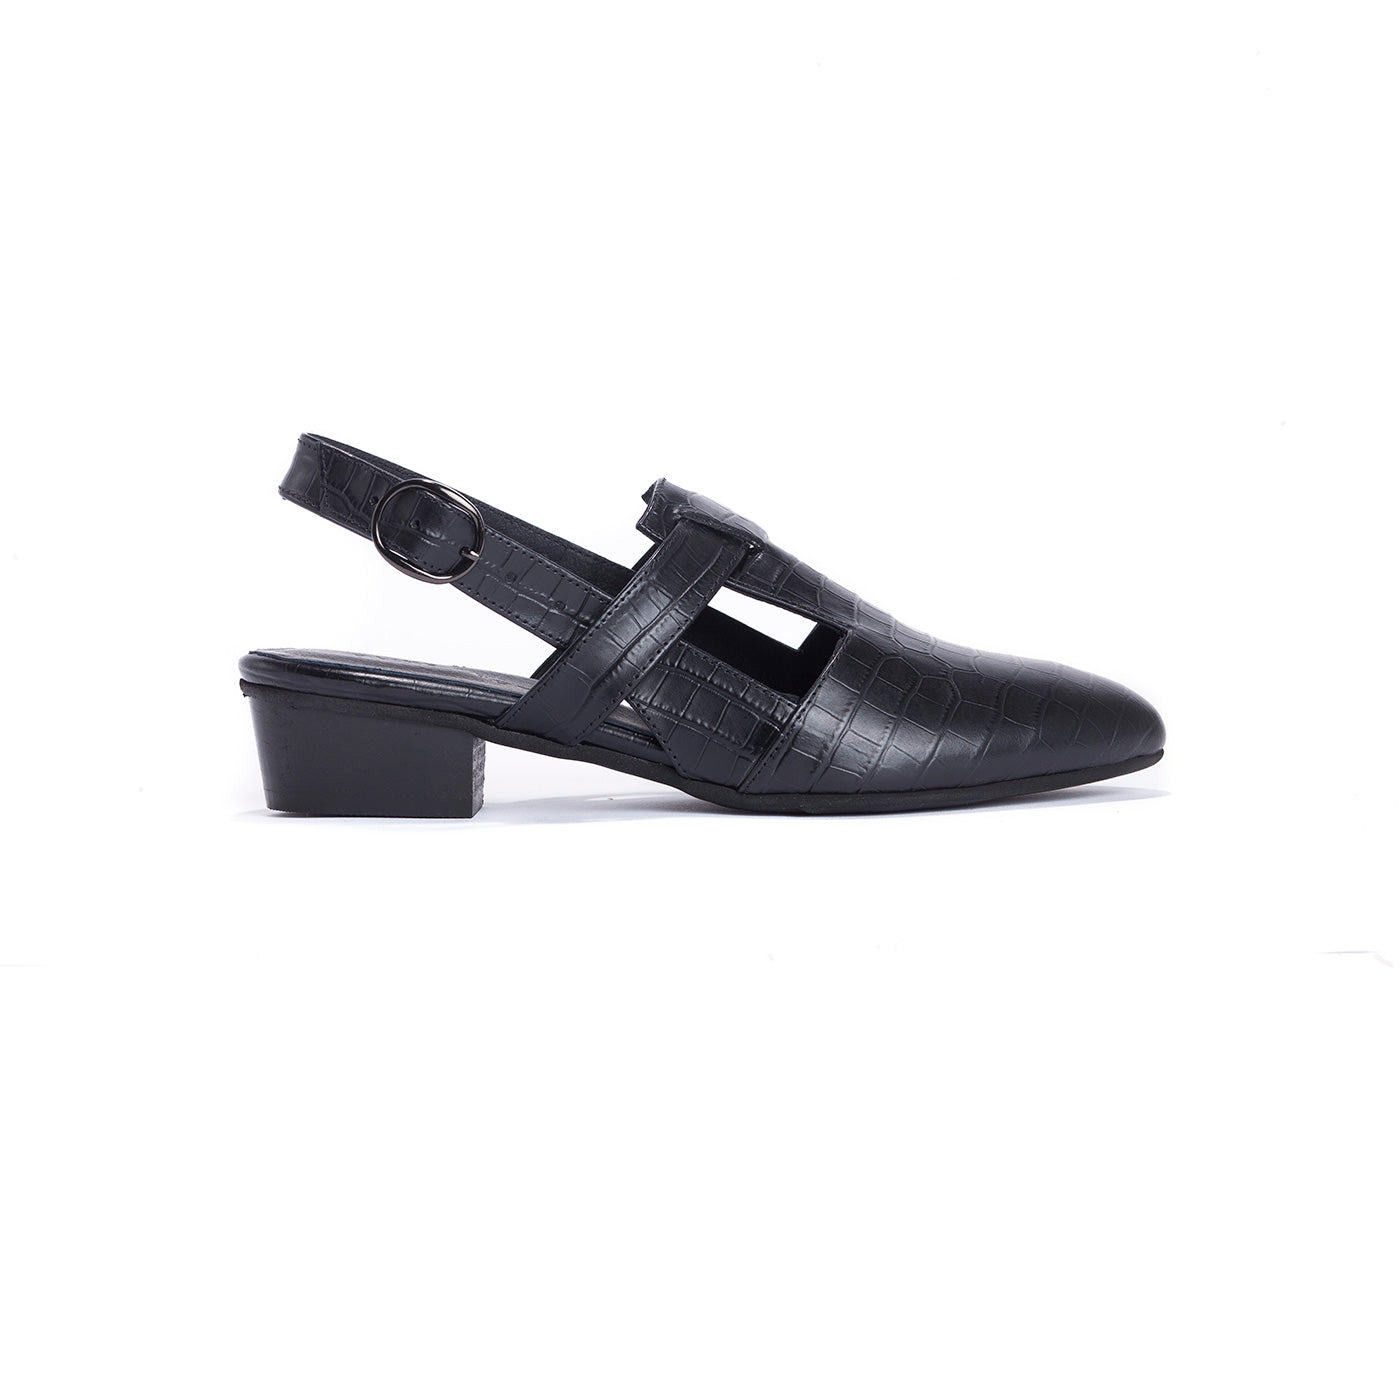 Francis - Closed Toe Sandals